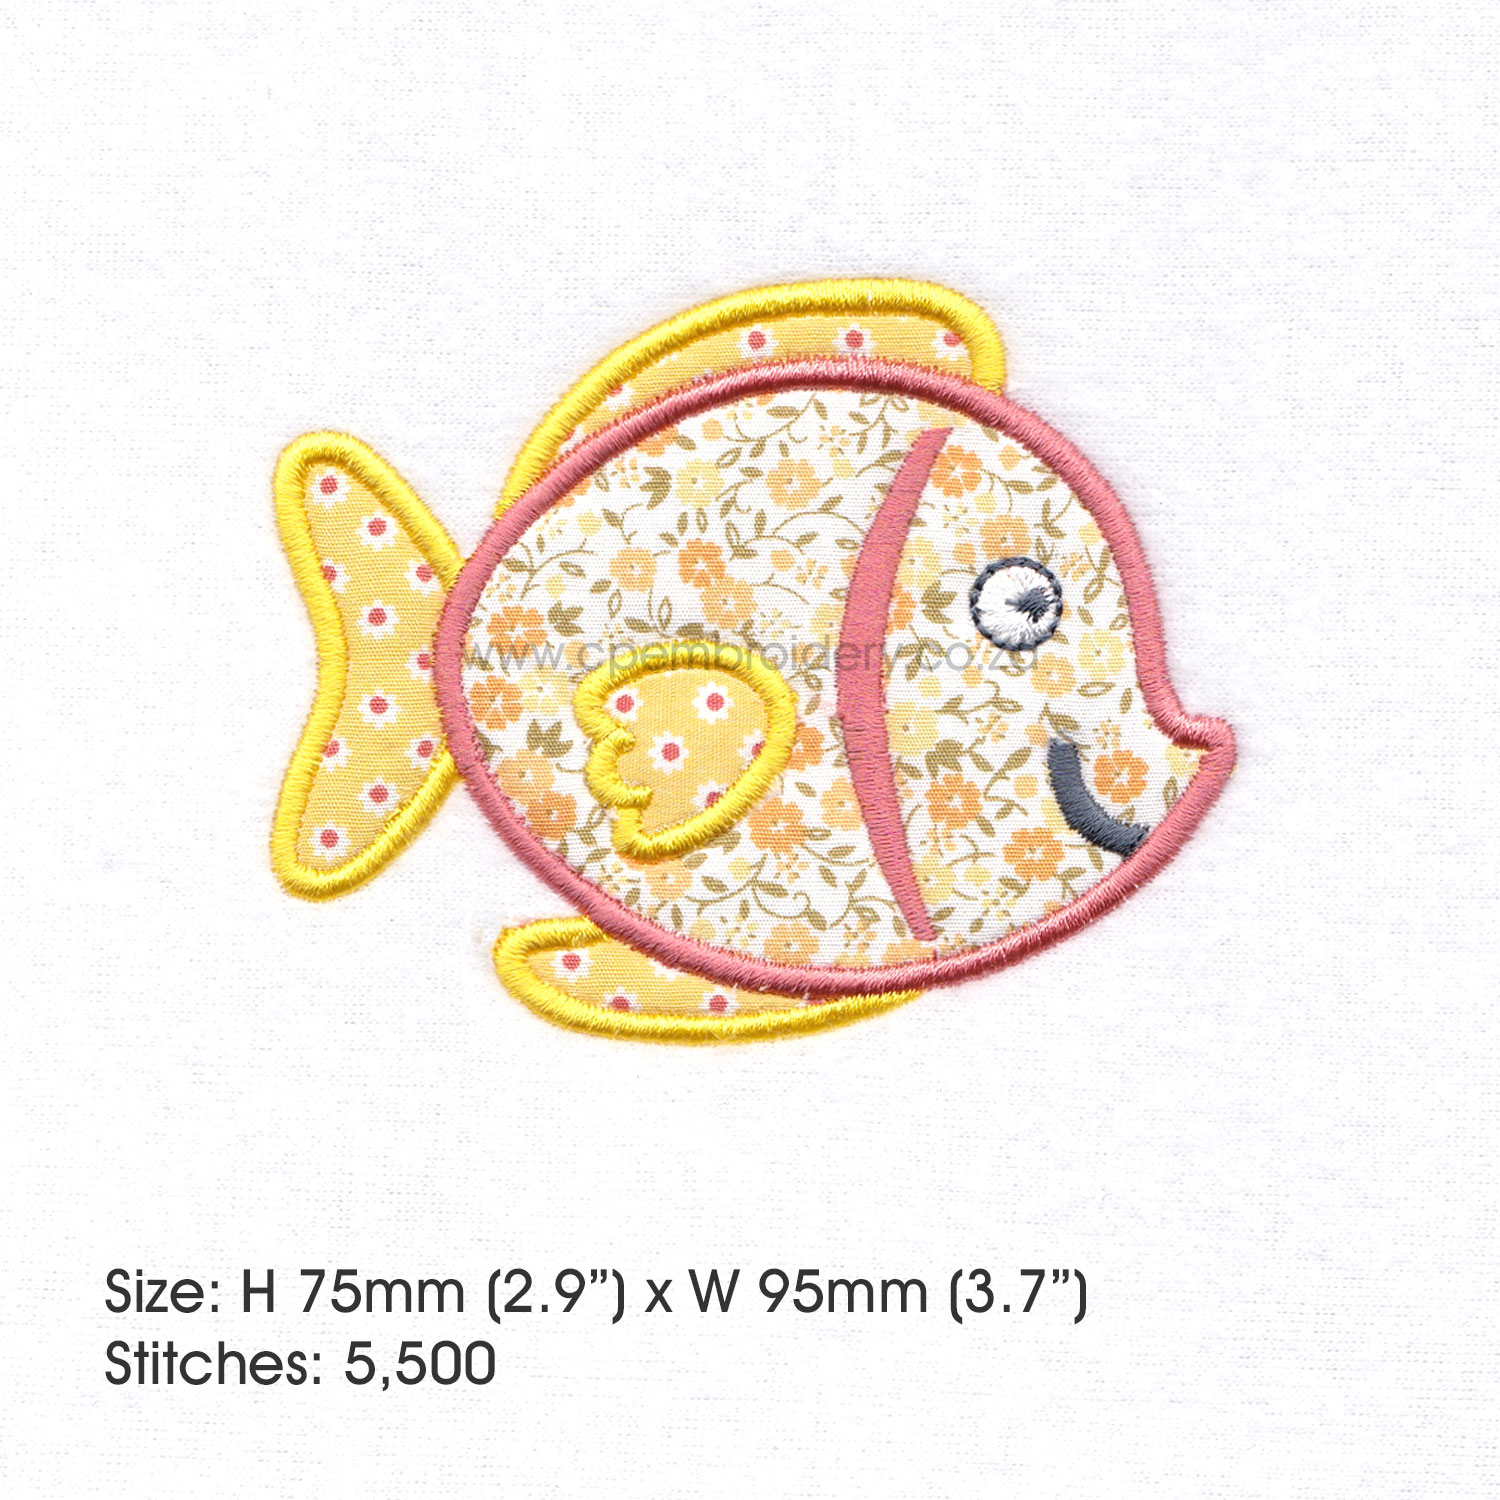 Yellow Tang Pet Fish Applique Machine Embroidery Design example image 4